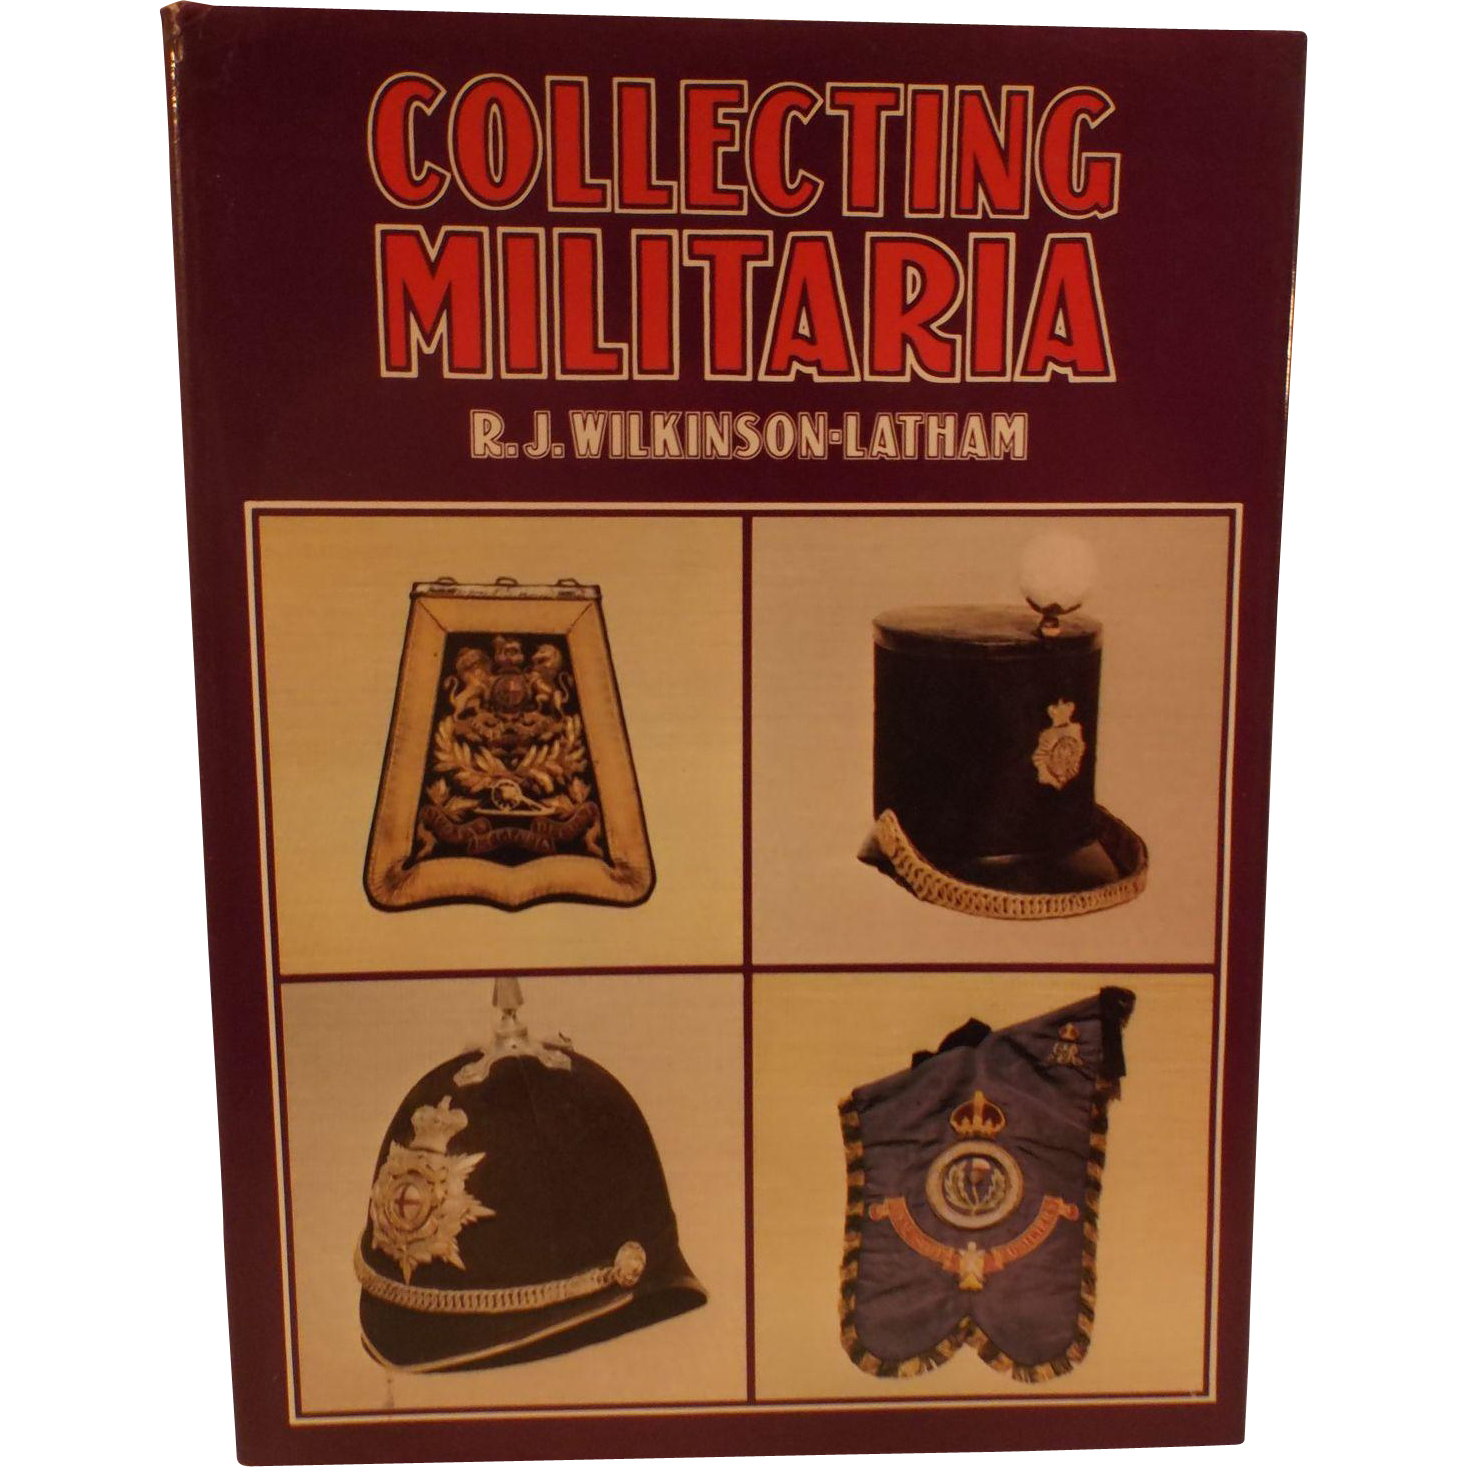 Collecting militaria by r j wilkinson latham 1975 from